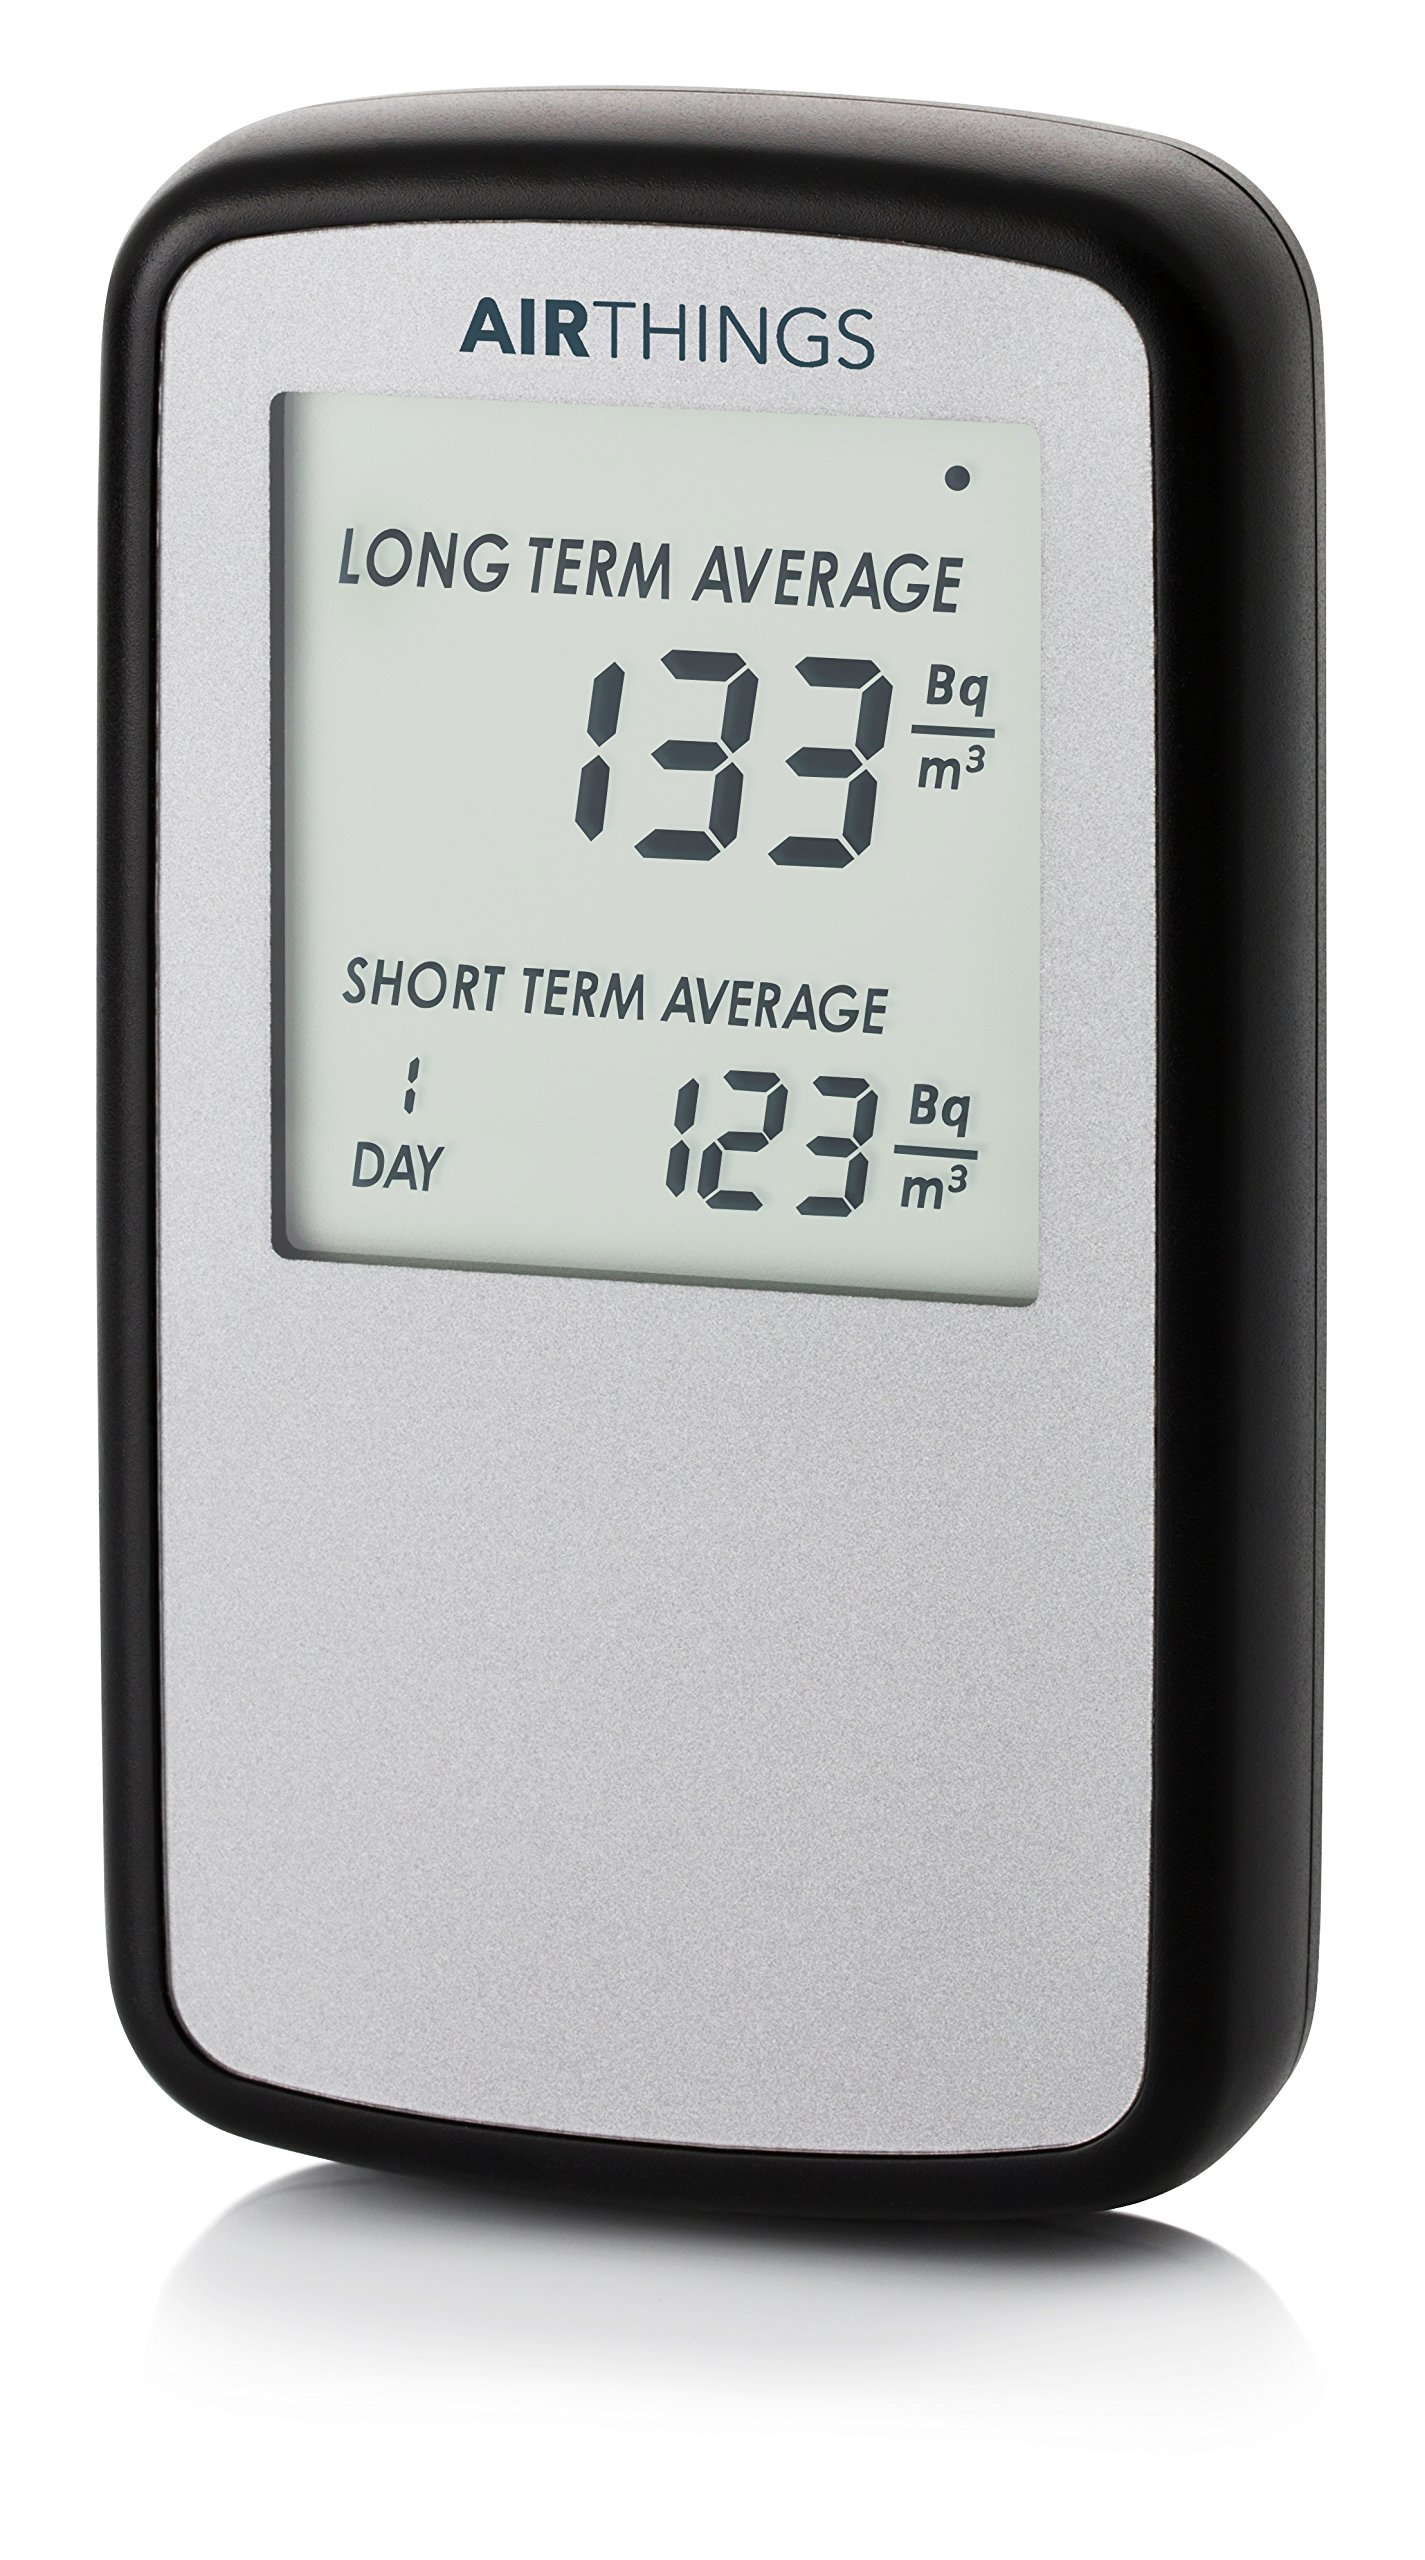 Corentium Home Radon Detector by Airthings 224 Portable, Lightweight, Easy-to-Use, (3) AAA Battery Operated, International Version, Bq/m³